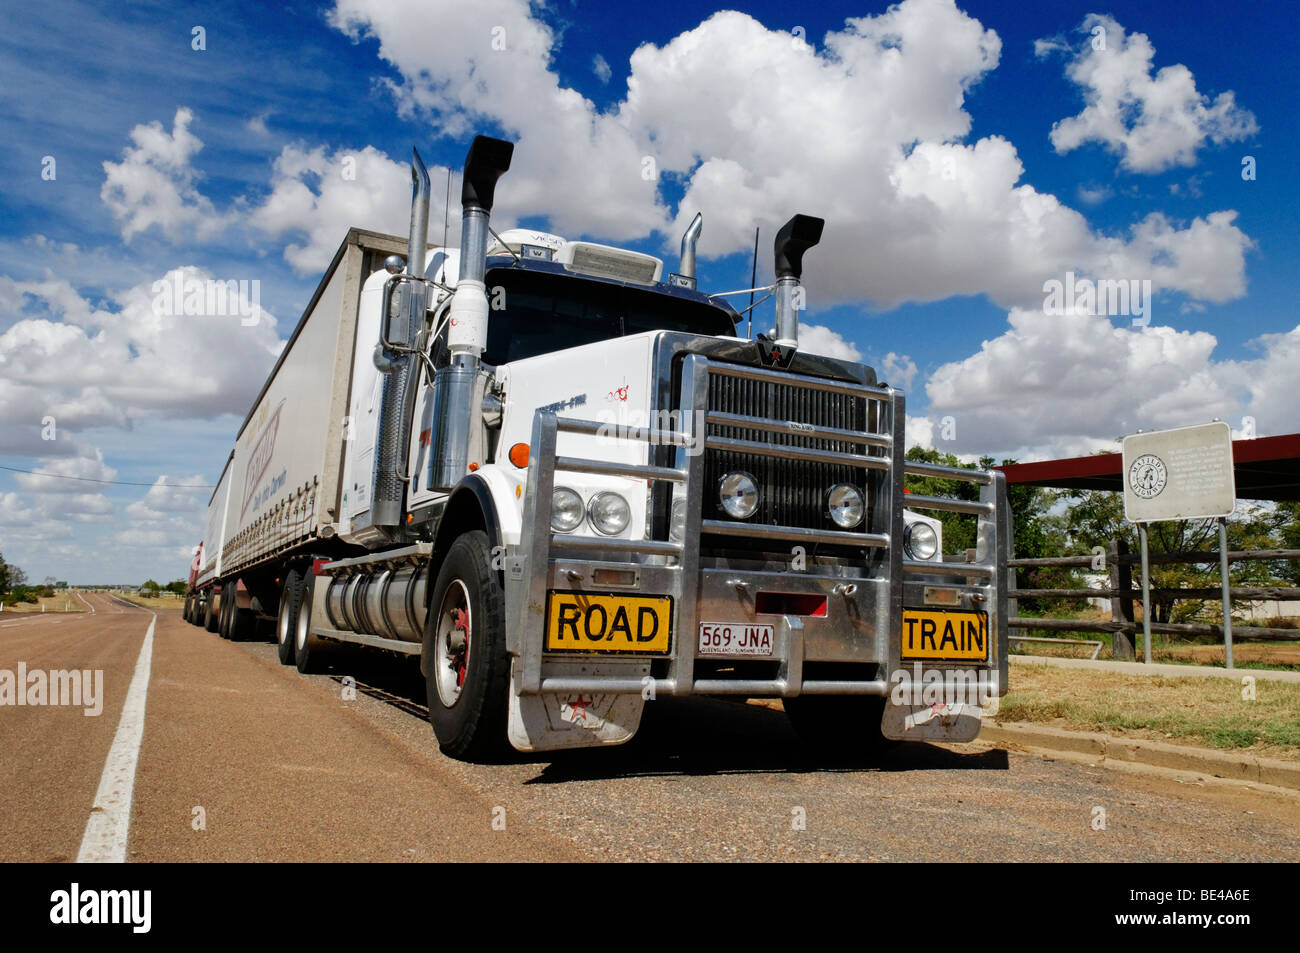 Huge roadtrain truck at Ilfracombe, Queensland Outback, Australia - Stock Image